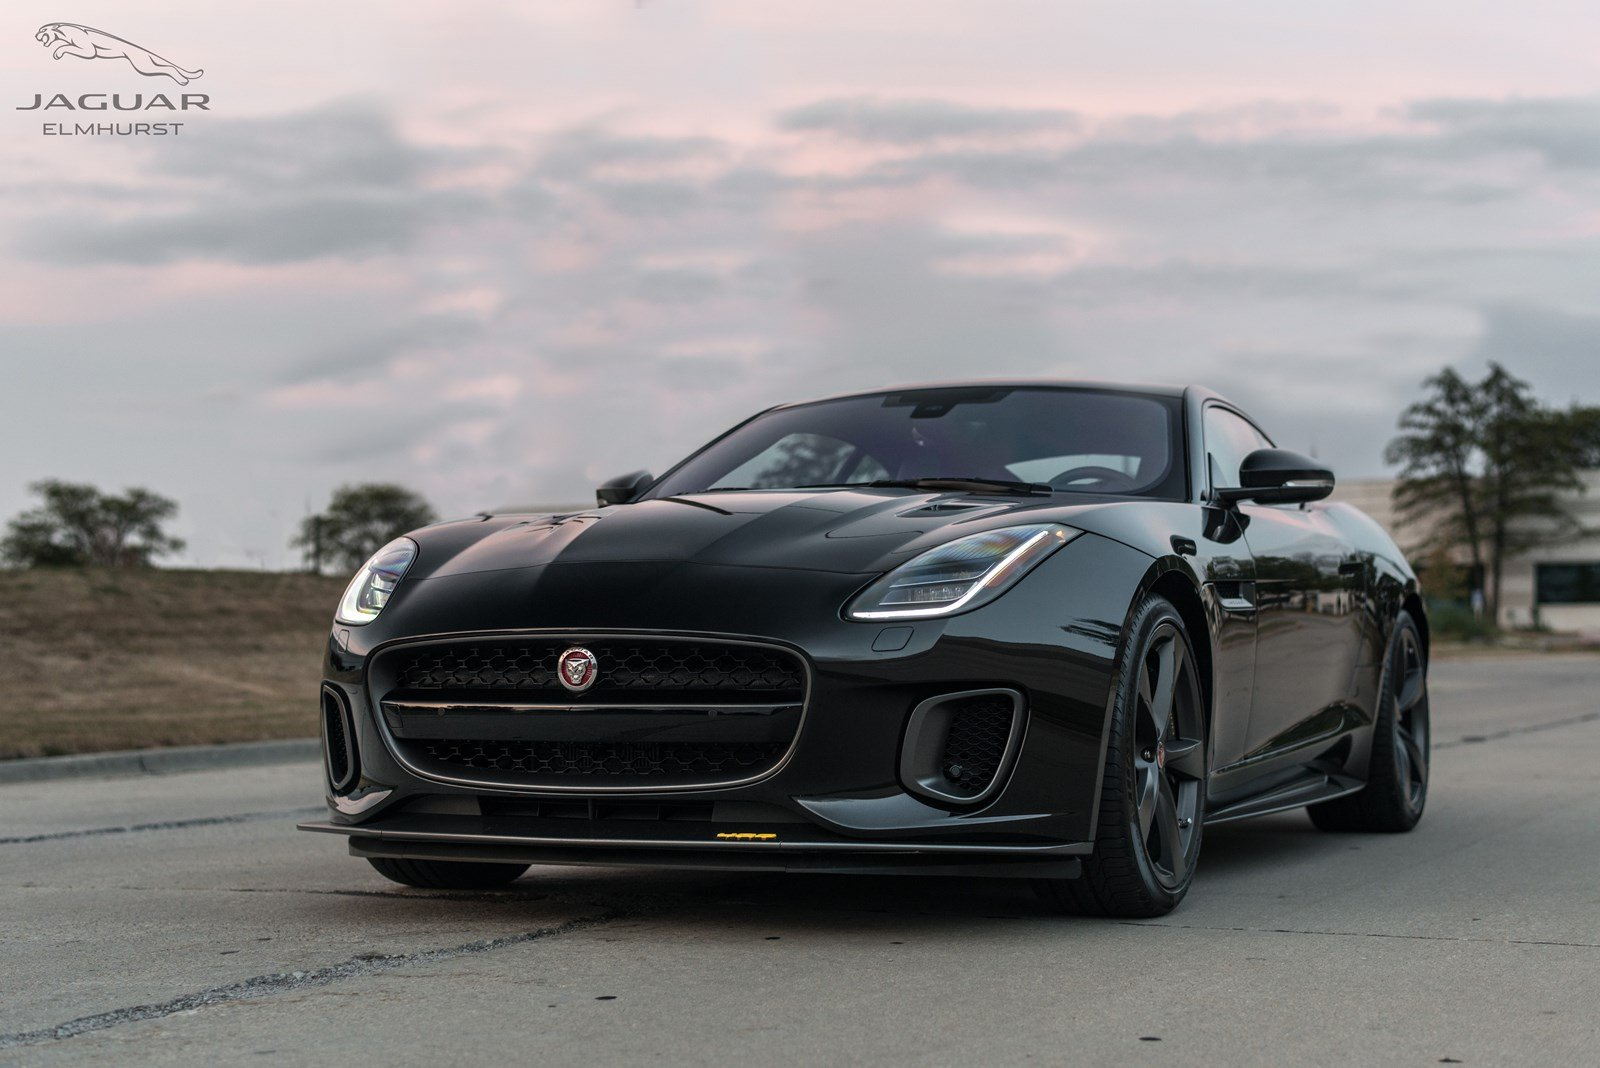 new 2018 jaguar f type 400 sport 2dr car in elmhurst. Black Bedroom Furniture Sets. Home Design Ideas